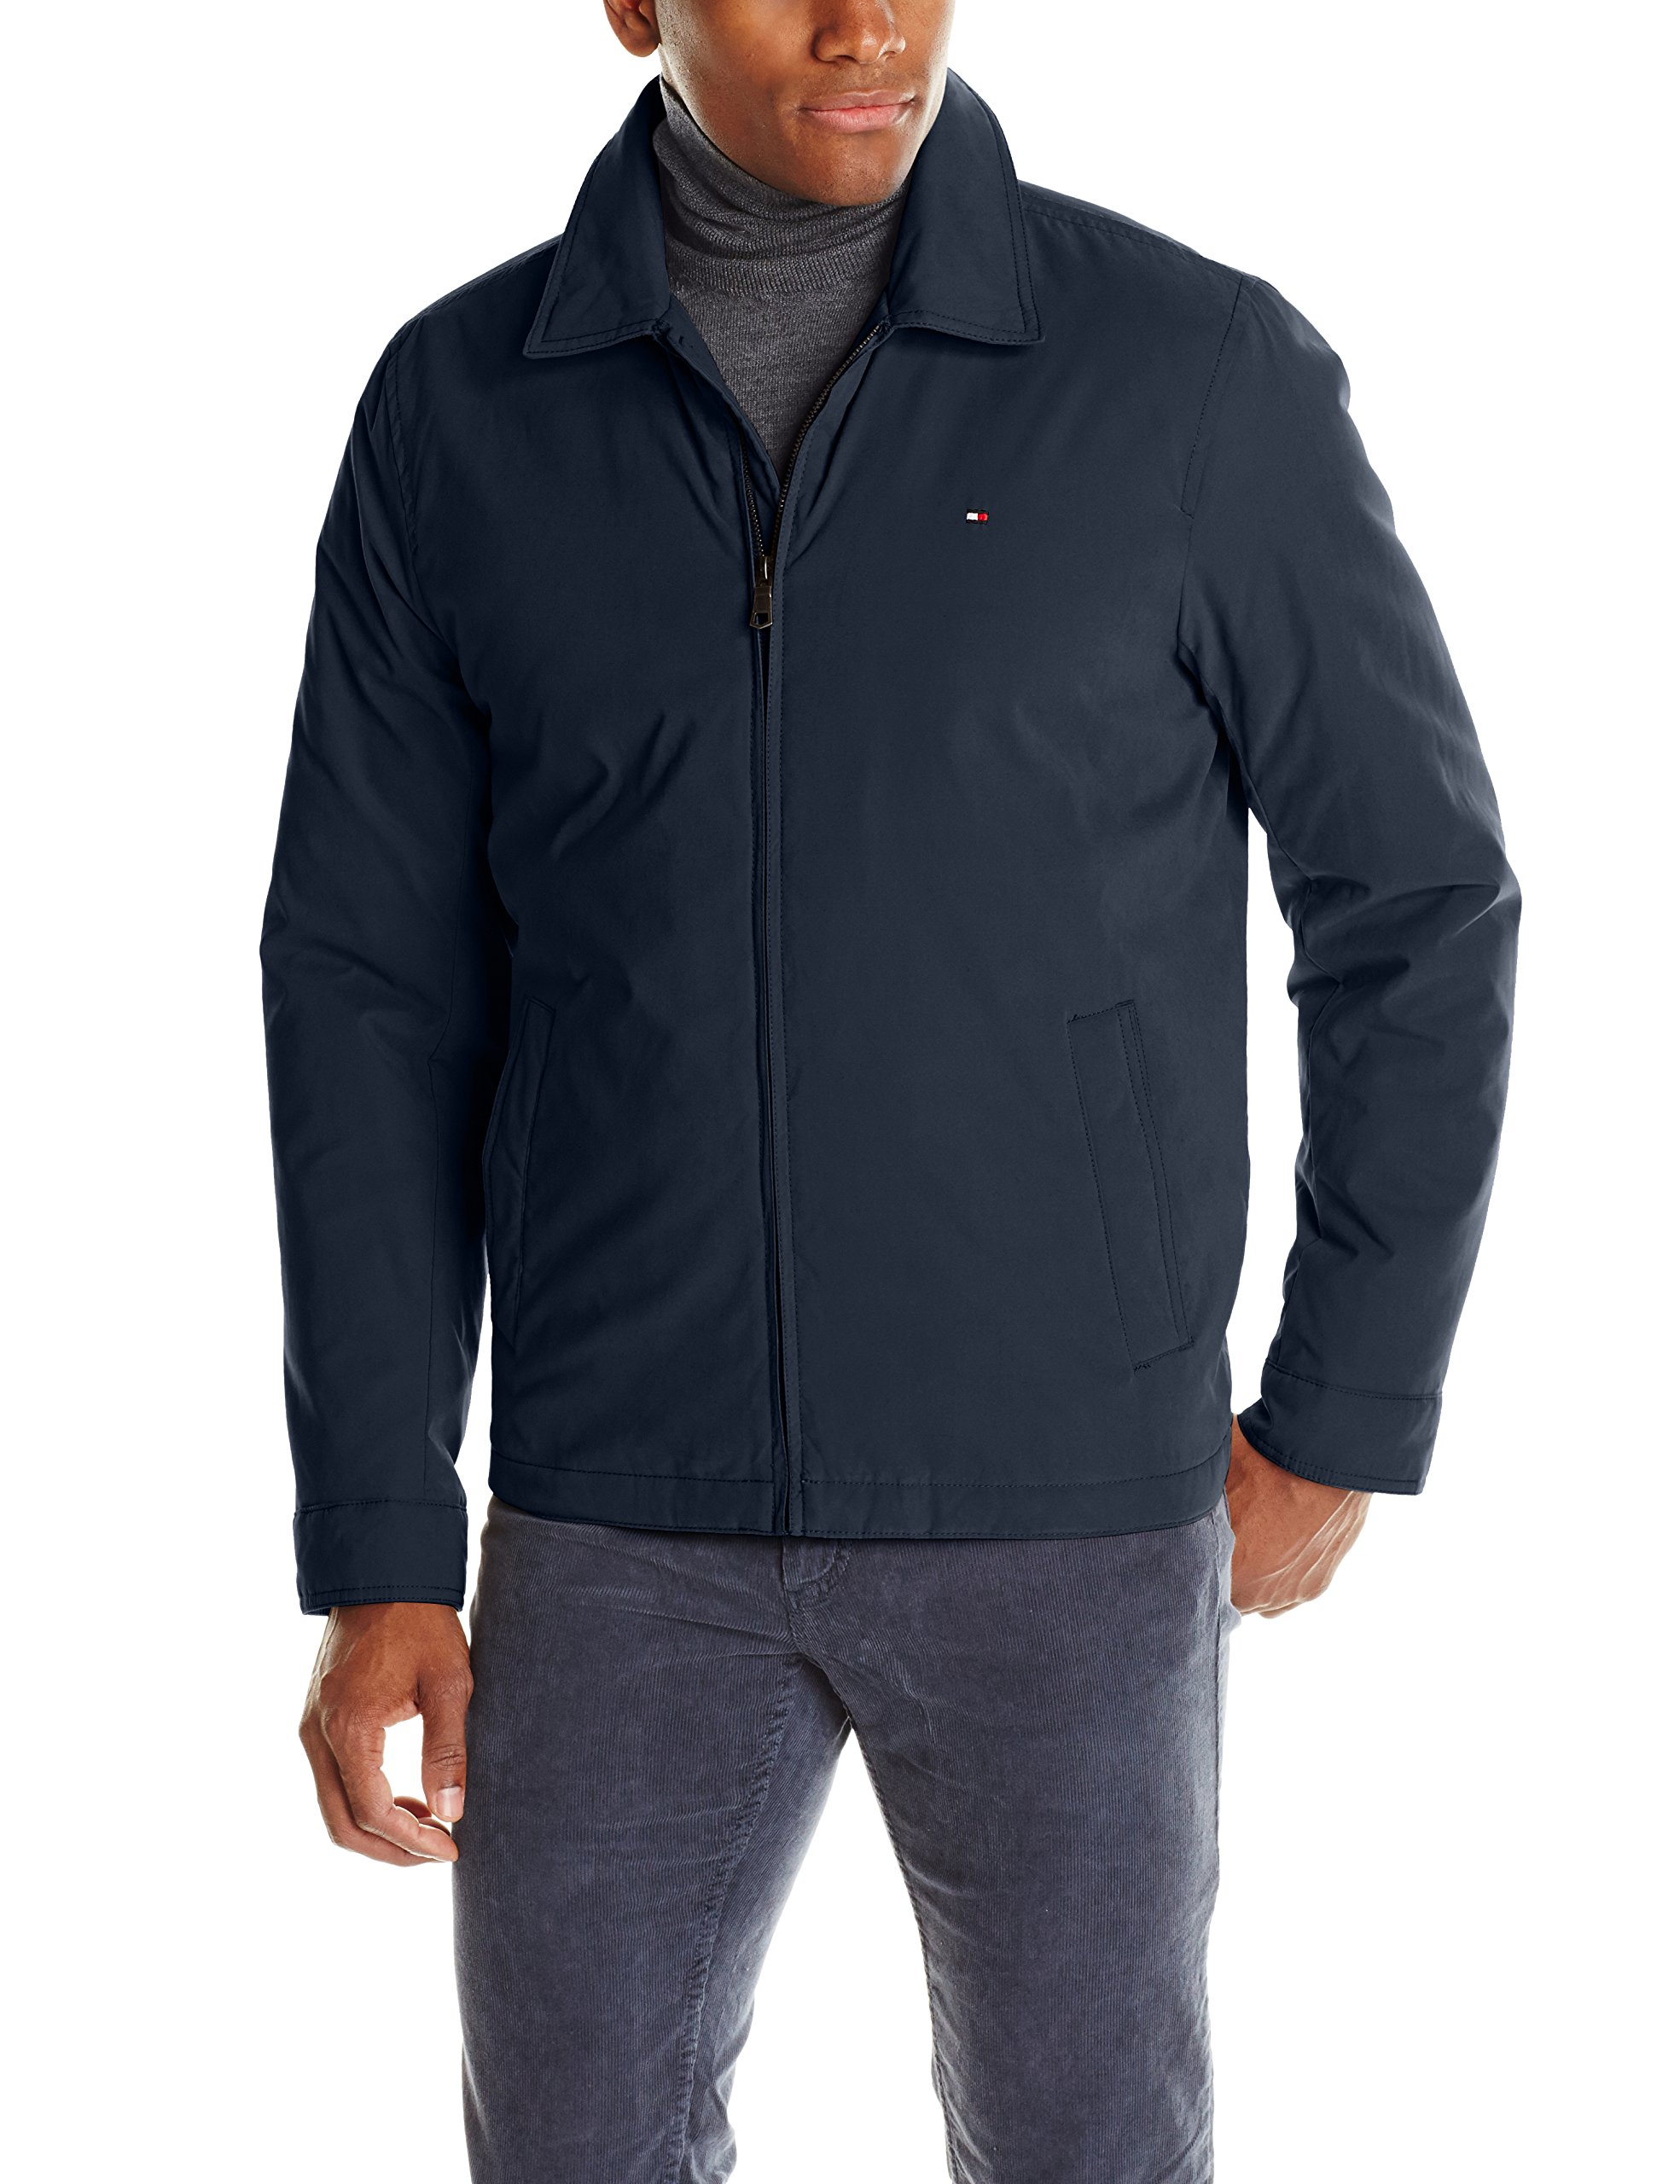 Tommy Hilfiger Men's Micro-Twill Open Bottom Zip Front Jacket, Navy, Large by Tommy Hilfiger